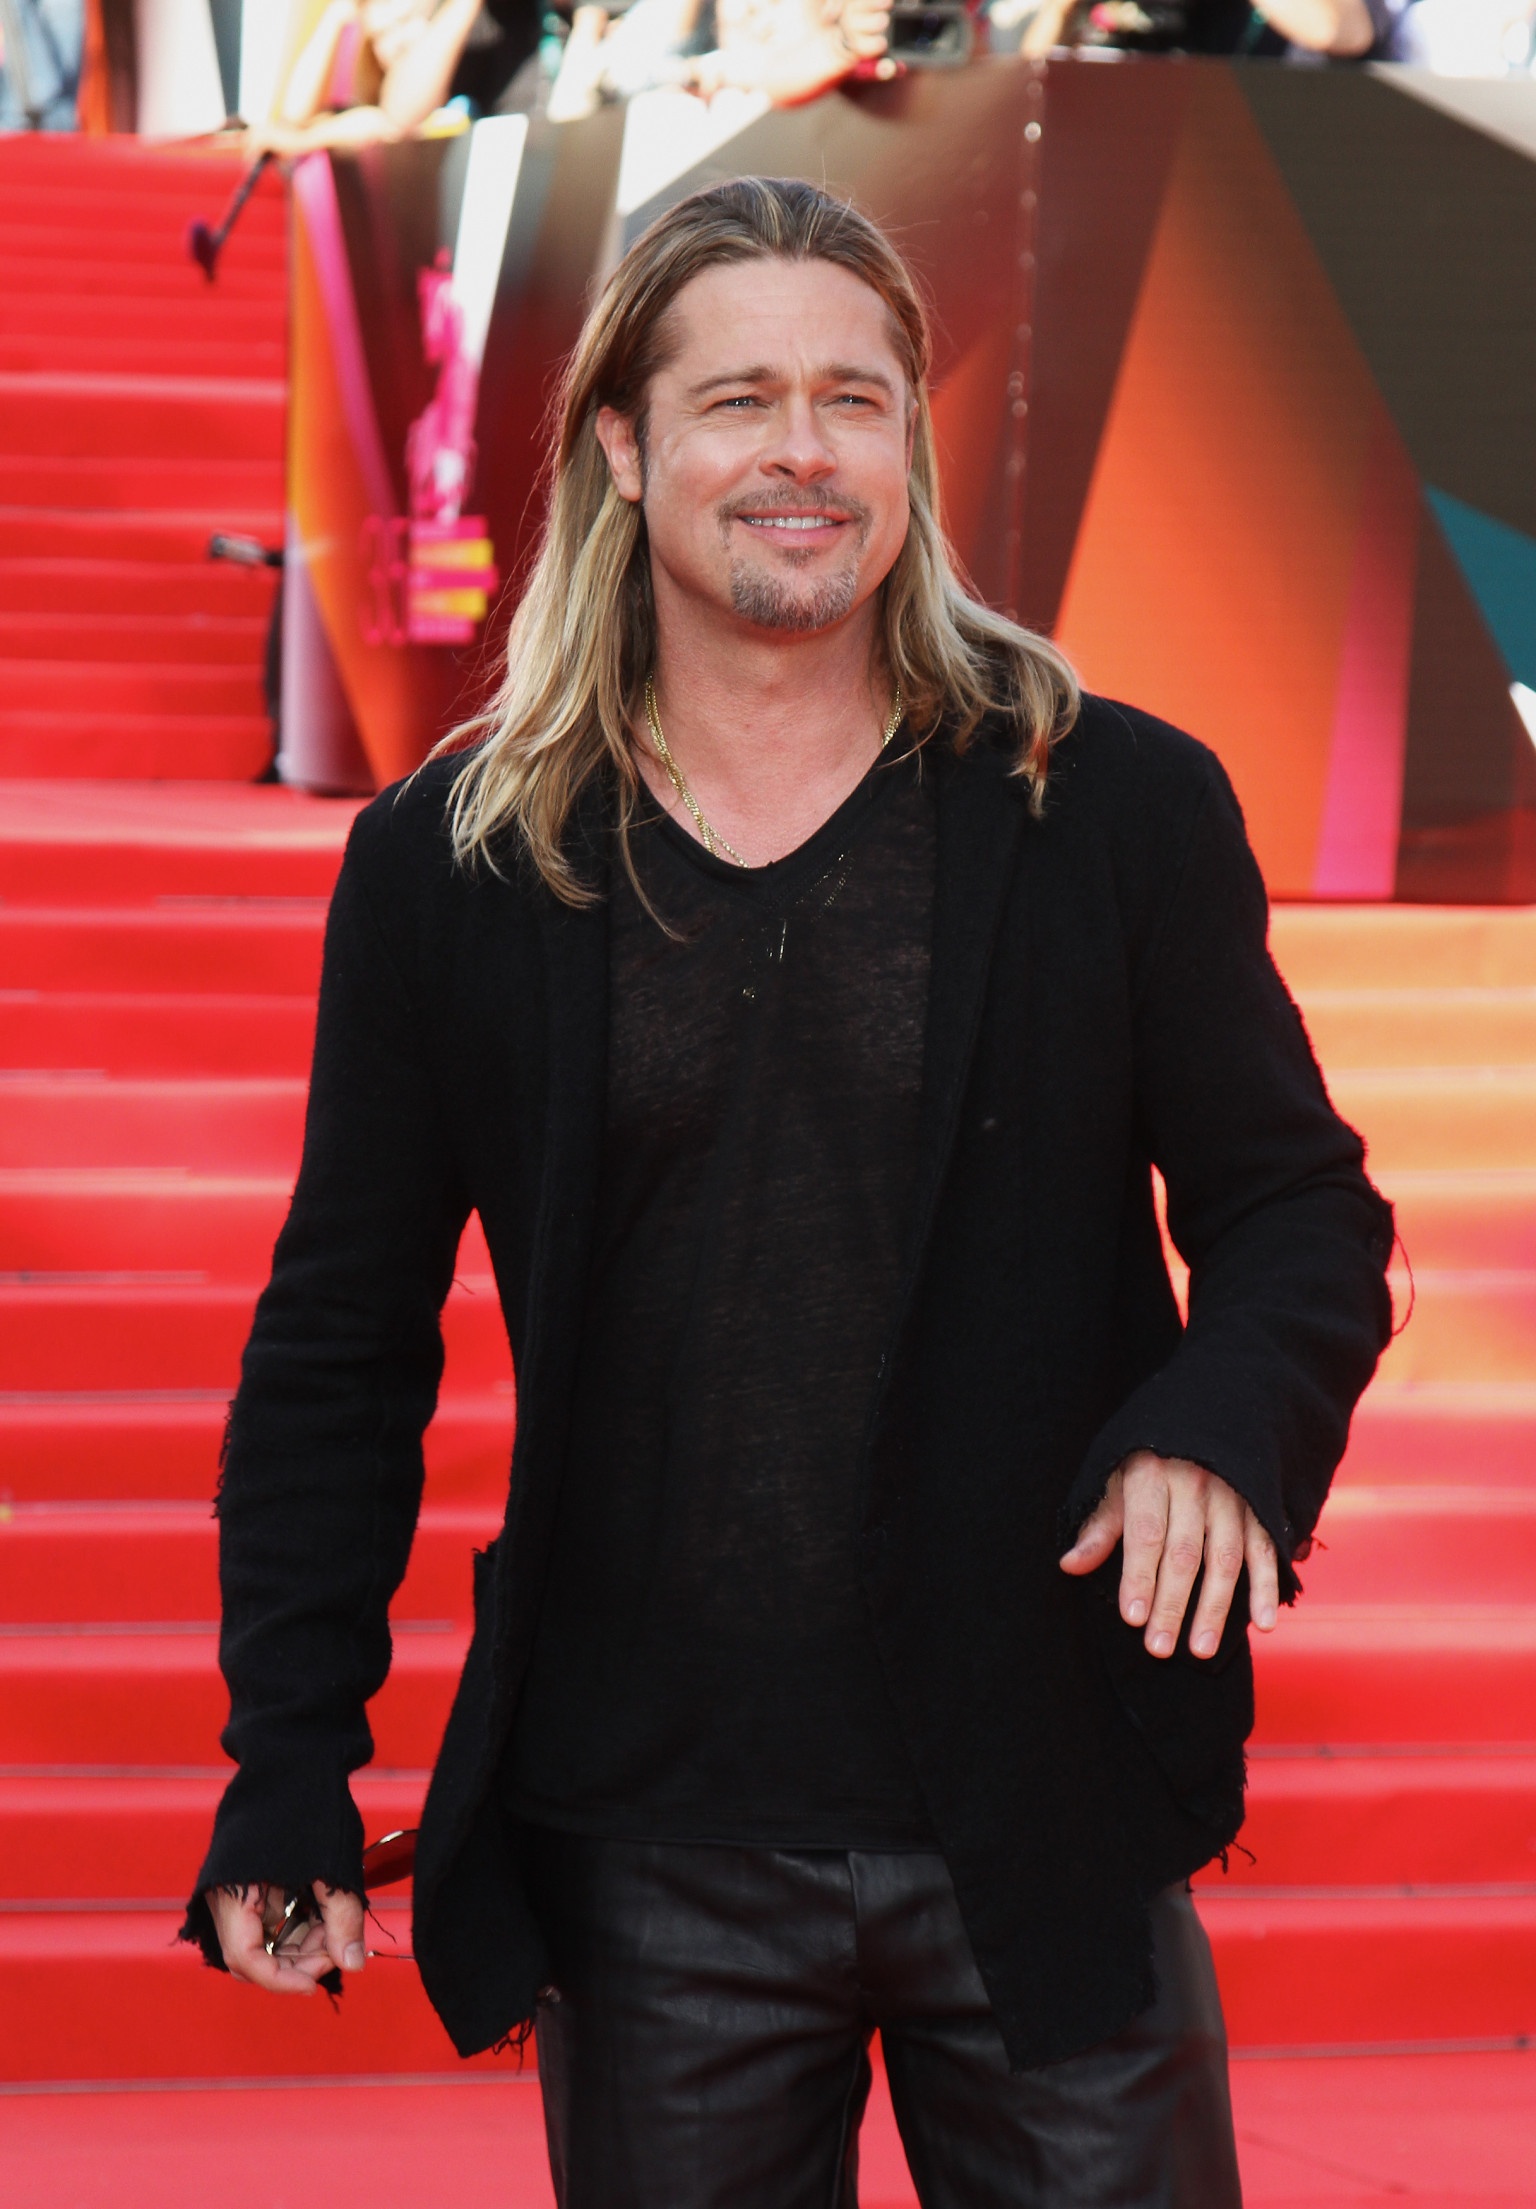 Brad Pitt In World War Z Russia Premiere Actor Has Not Aged 20 Years PHOTOS